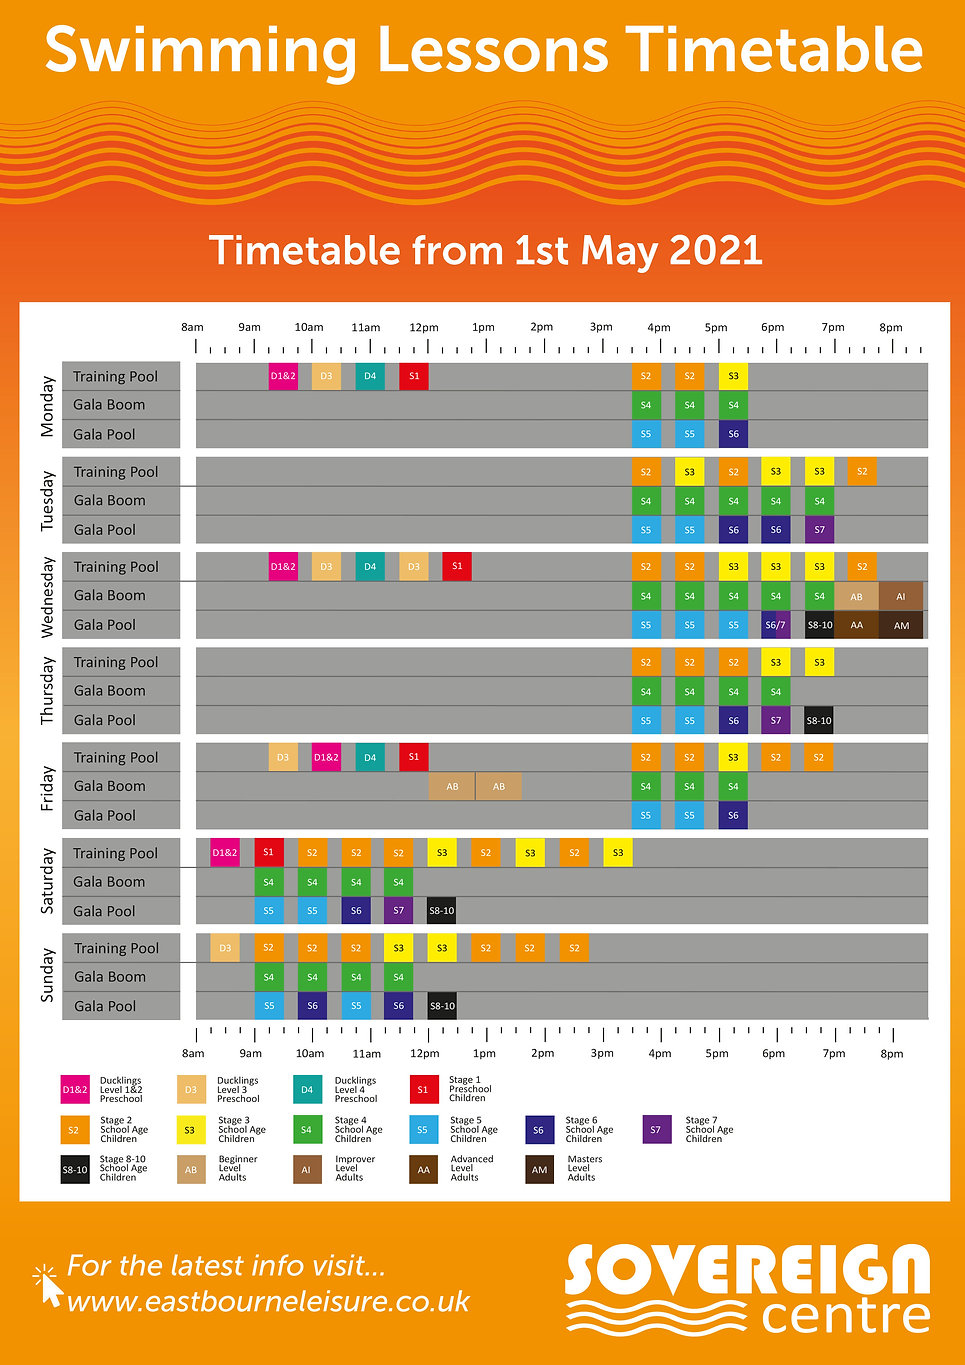 swimming lessons timetable May 21.jpg